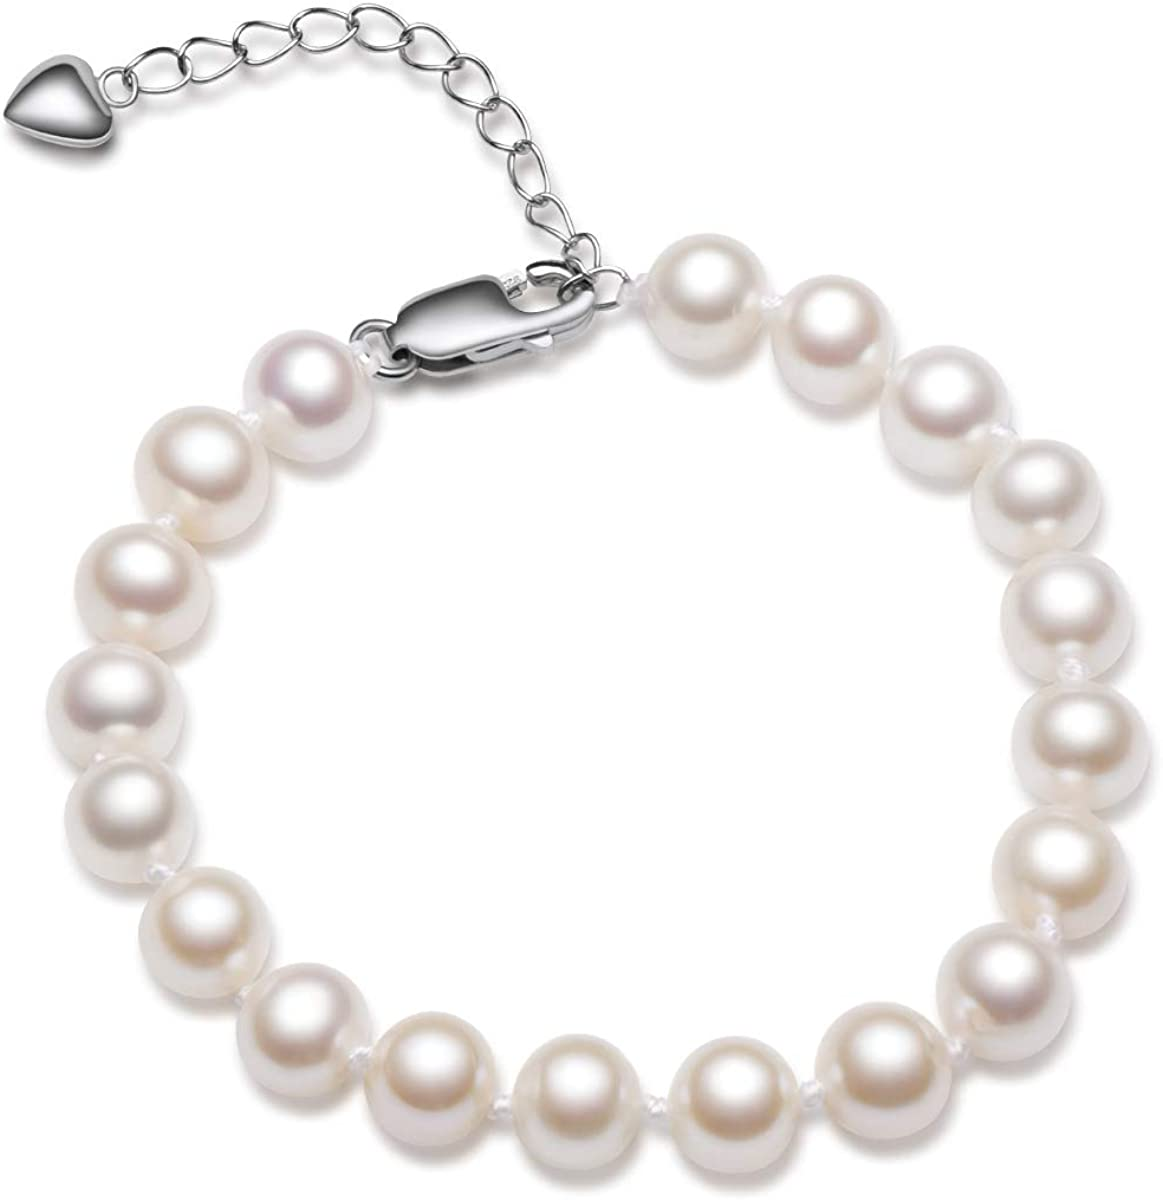 AAA Genuine Natural 6-7 mm WHITE FRESHWATER PEARL NECKLACE BRACELET Set